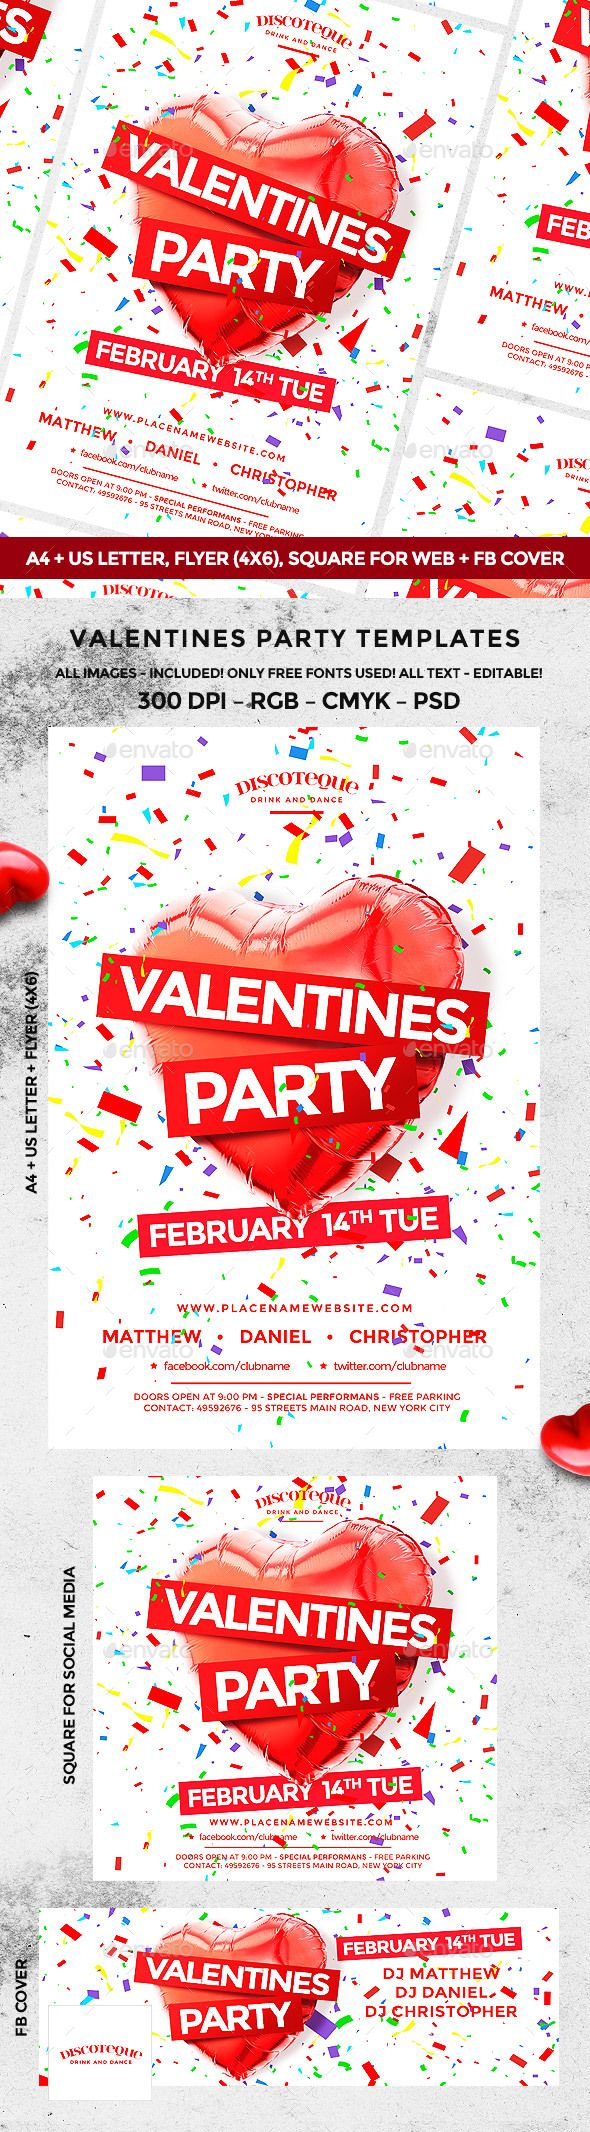 209 best Valentines Flyer Templates images on Pinterest